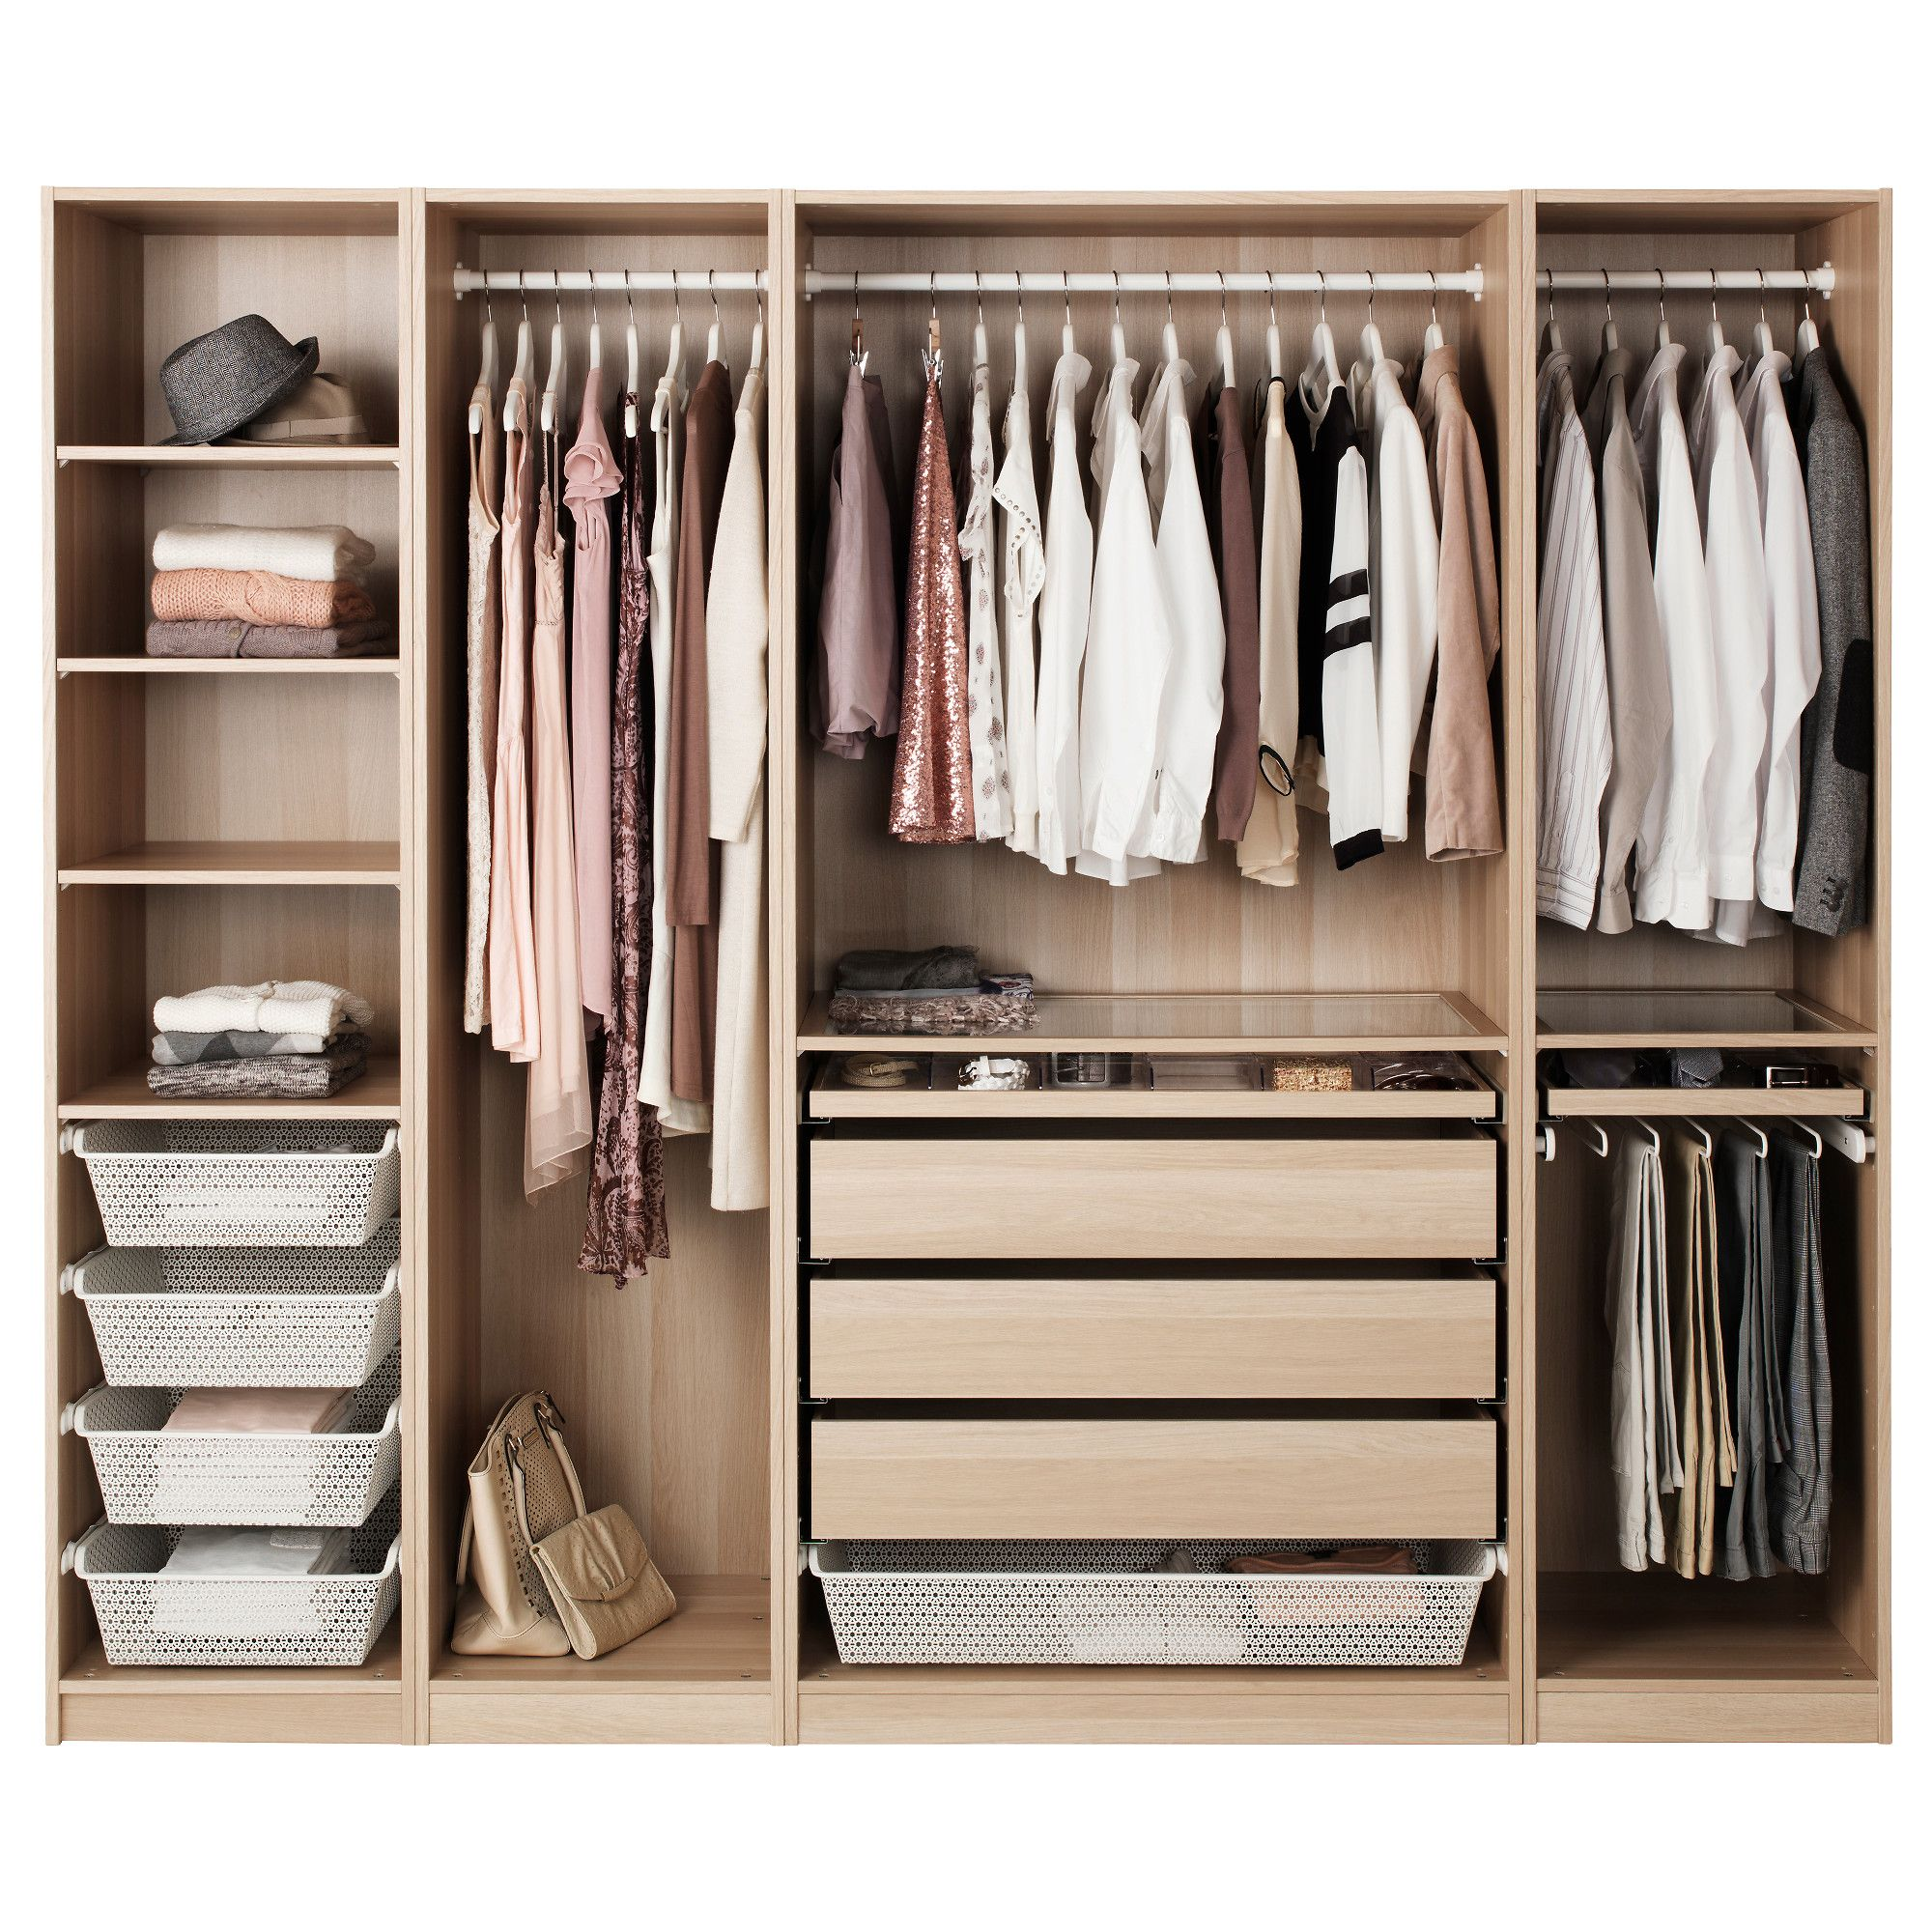 Planner Guardaroba Pax Ikea.Shop For Furniture Home Accessories More Bedroom Cupboards